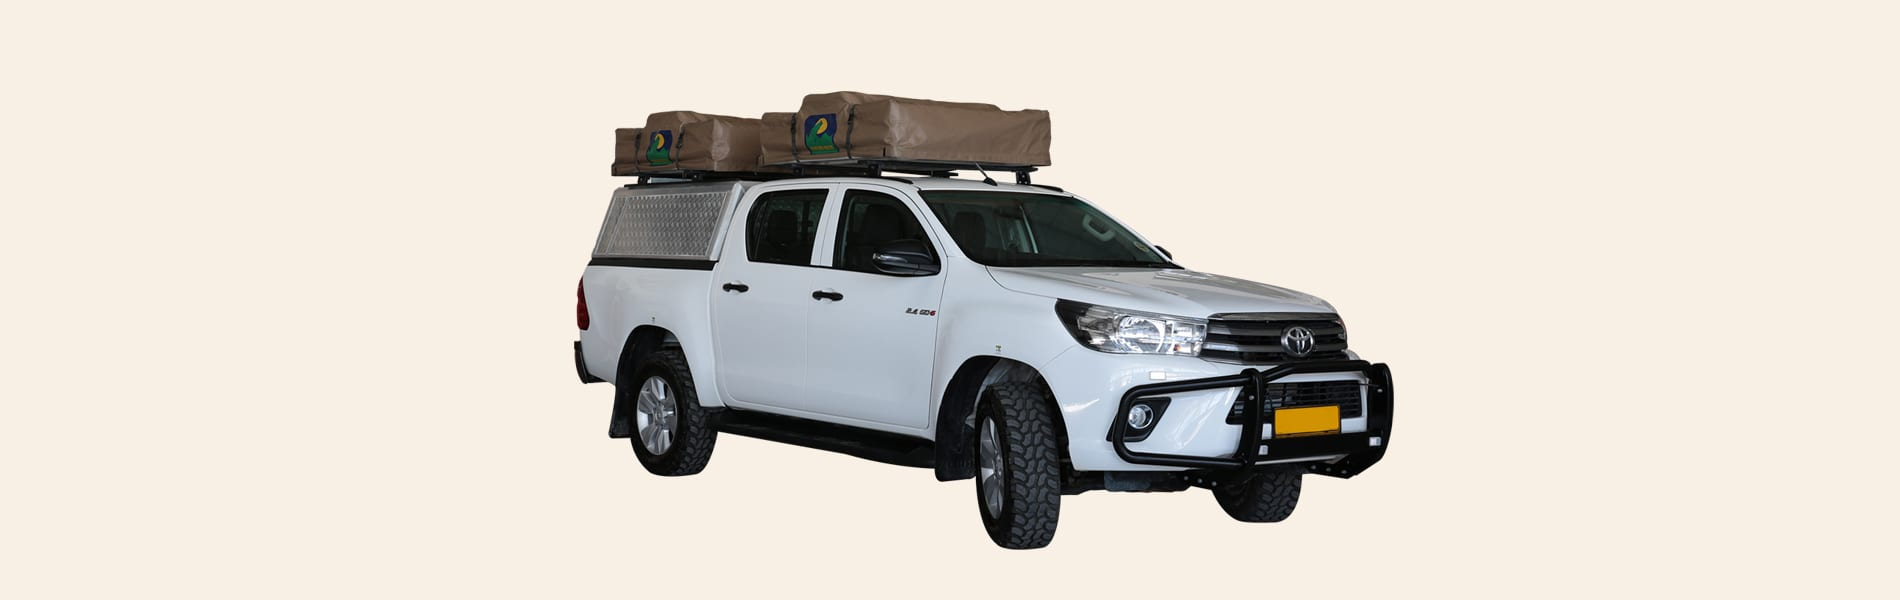 TOYOTA DOUBLE CAB CAMPING 4pax